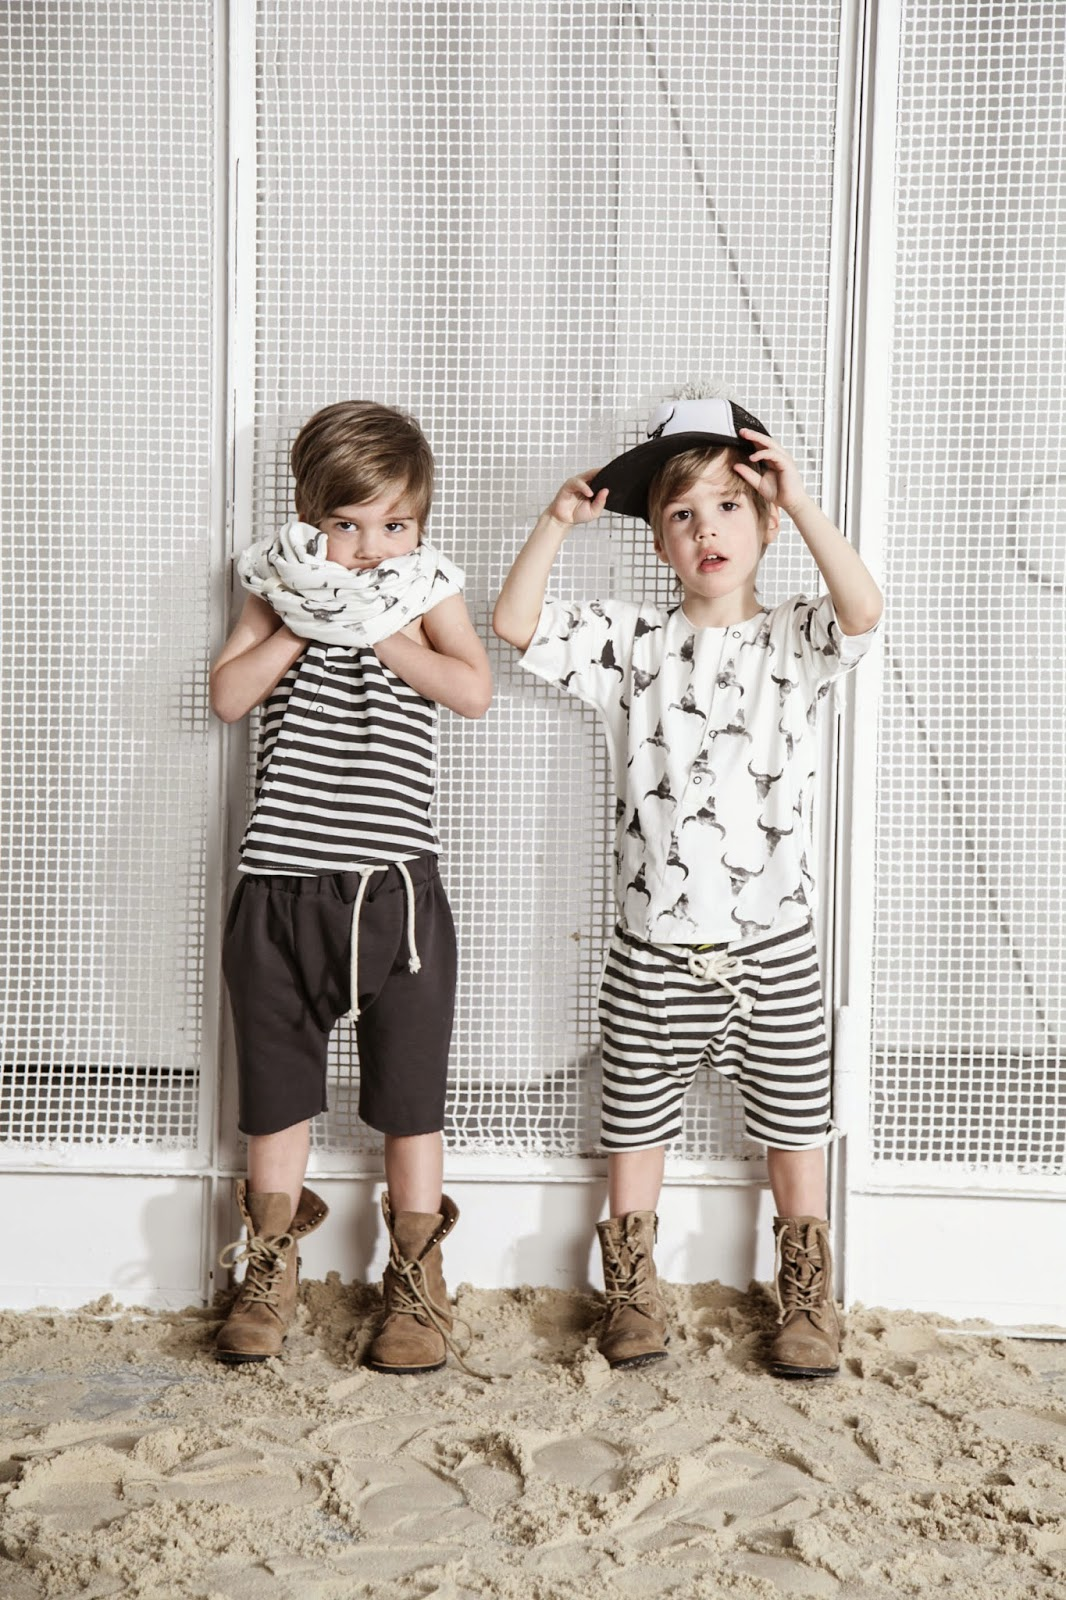 Kloo by Booso - Polish kids fashion spring-summer 2015 - boys style